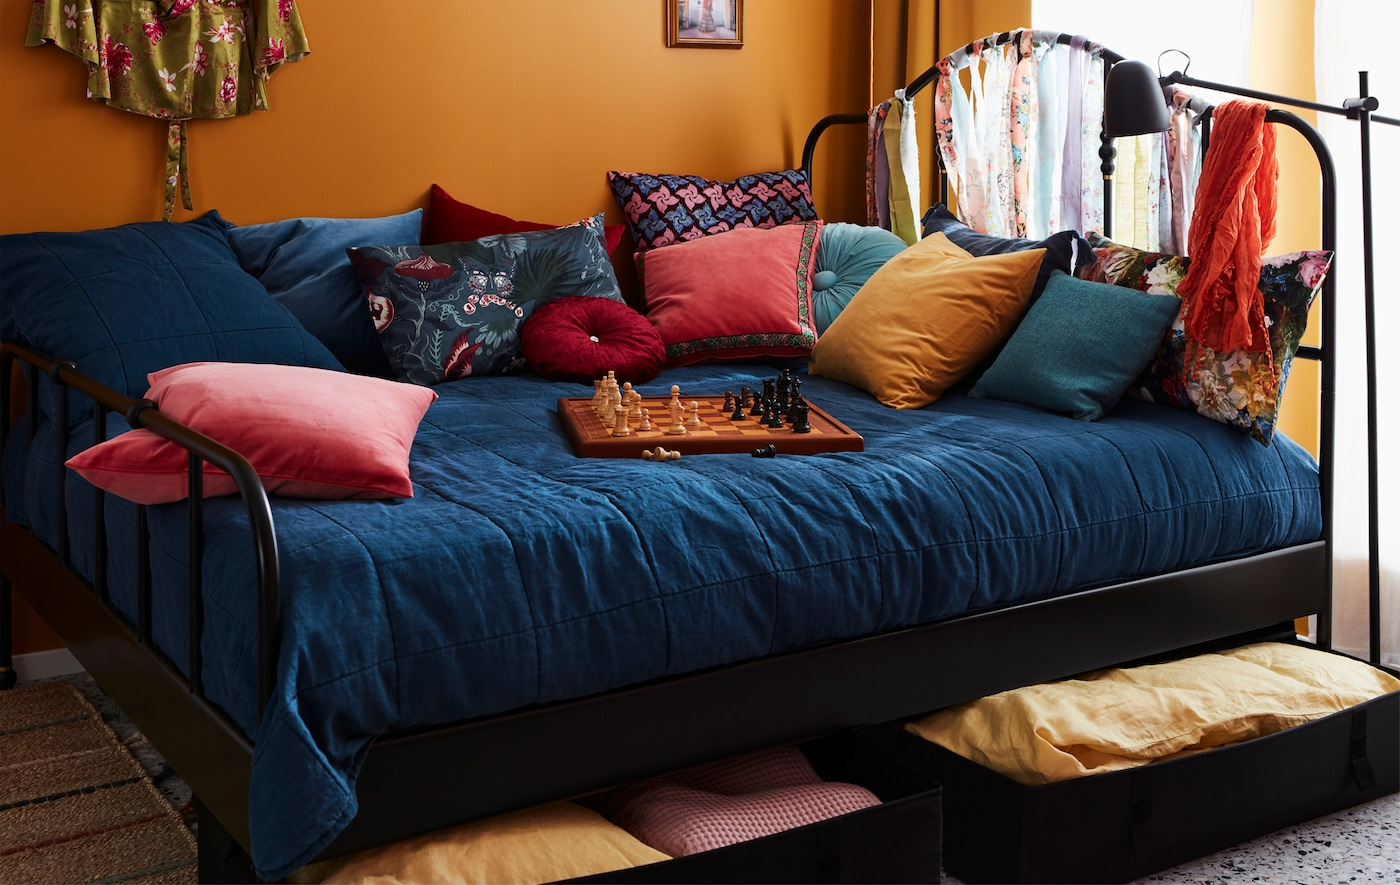 Wide, colourfully made bed with lots of cushions and a game of chess on top. Bed linen stored in boxes underneath.